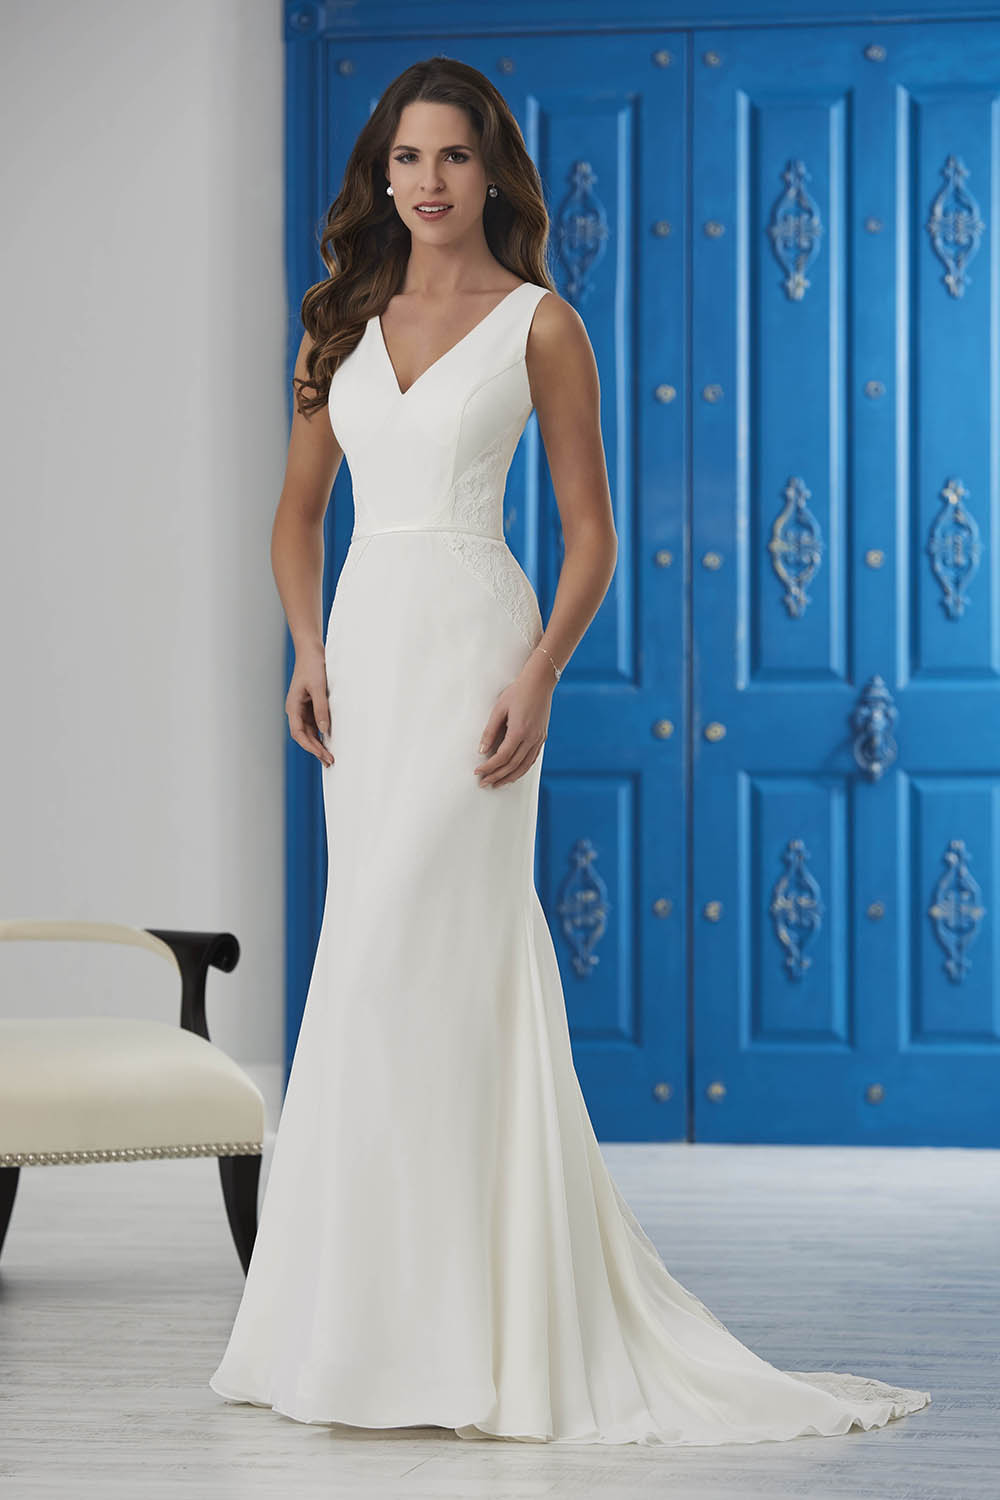 bridesmaid-dresses-jacquelin-bridals-canada-26210